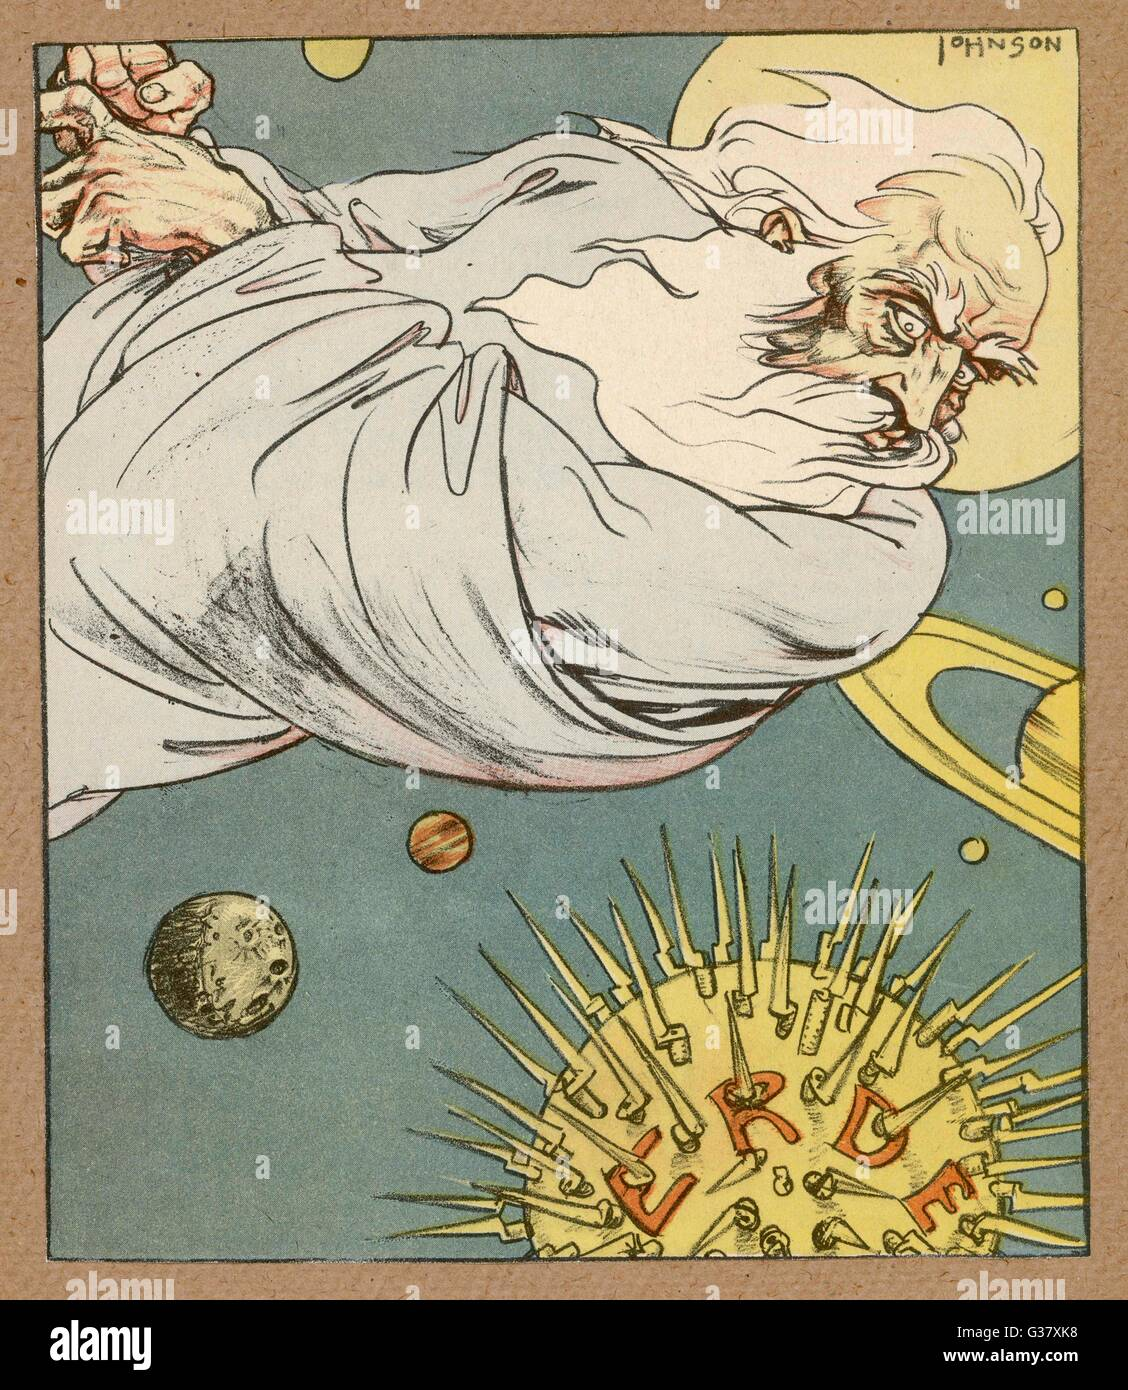 The Creator looks down from space, and is appalled by what he has created!     Date: 1931 - Stock Image